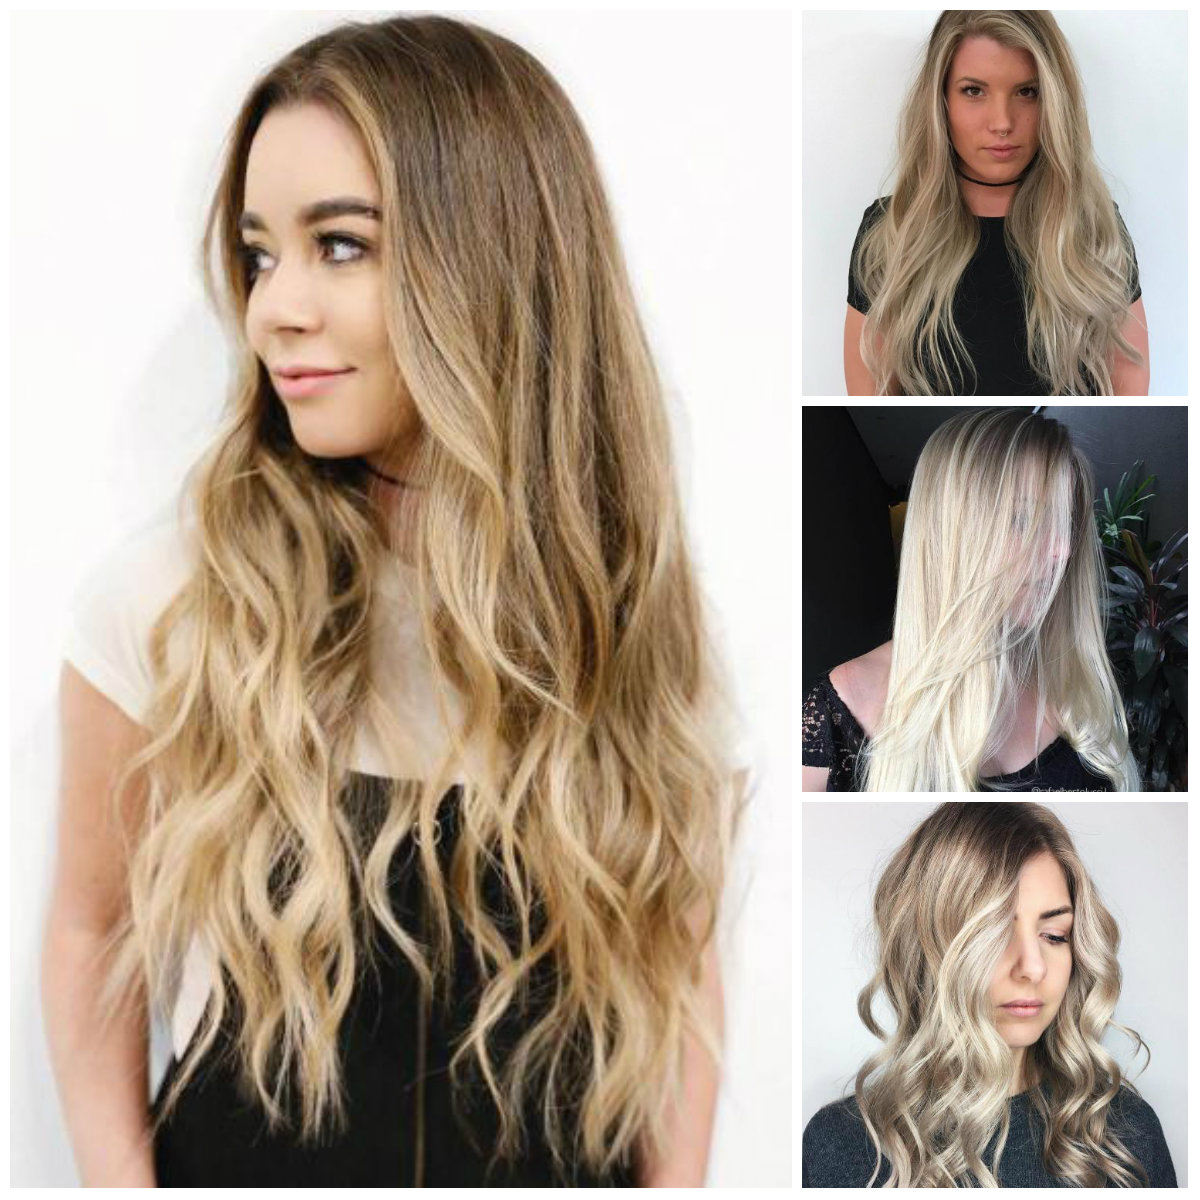 2017/ 2018 hairstyles for long blonde hair | 2019 haircuts